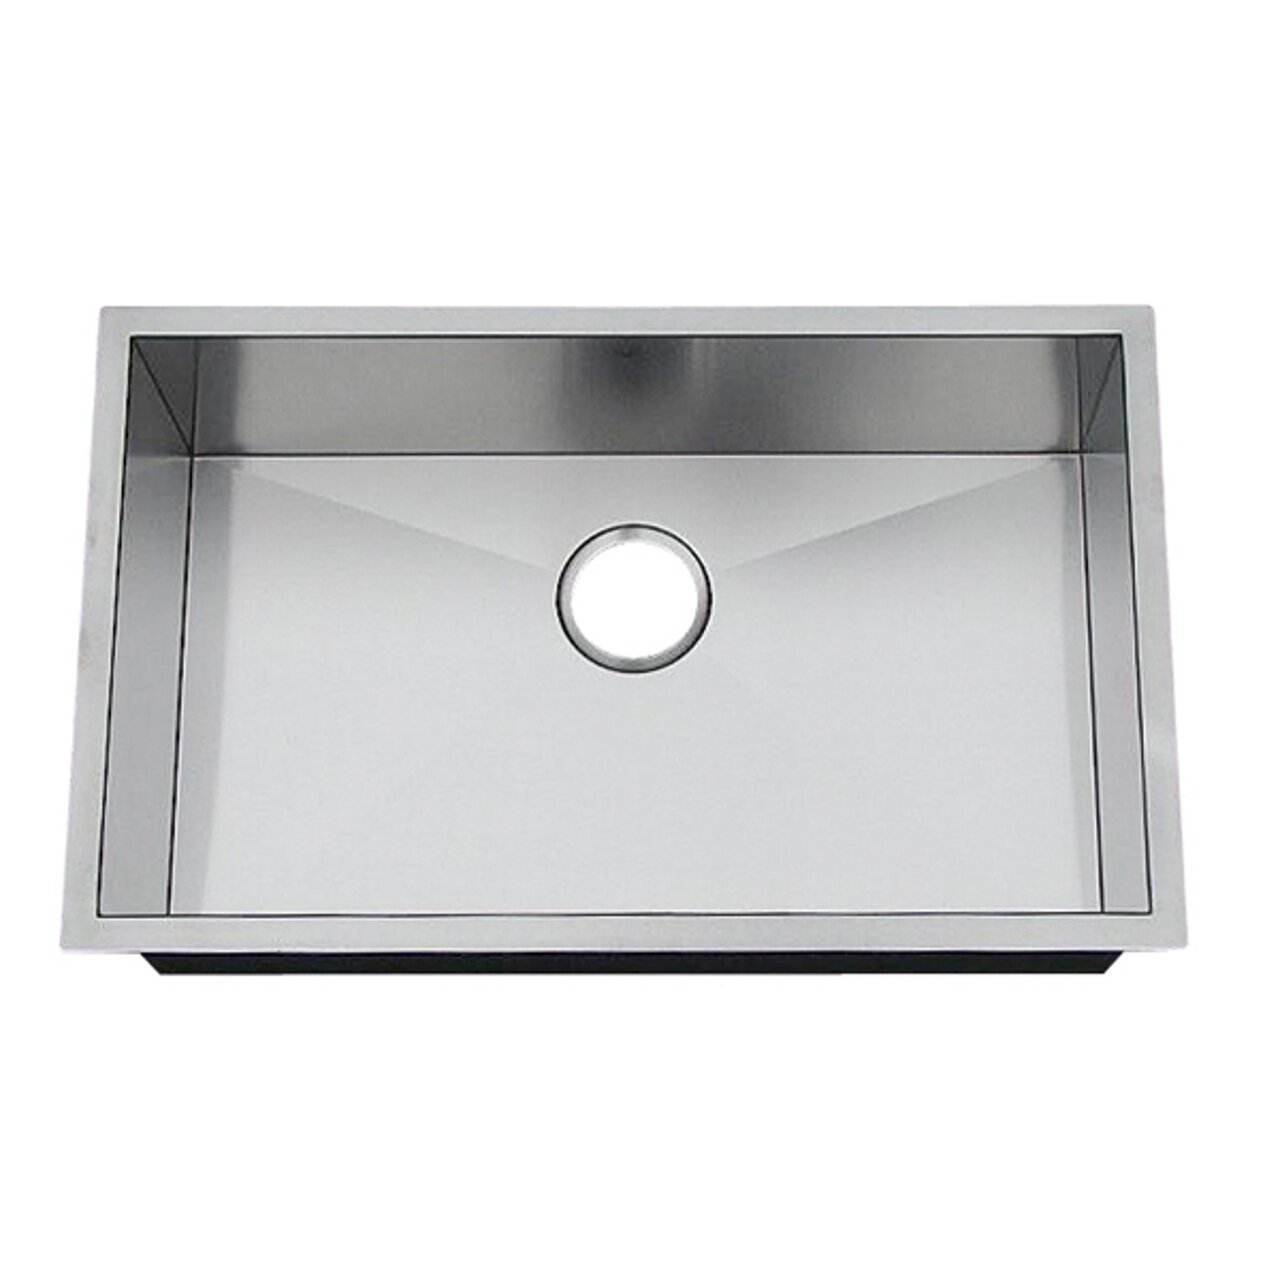 Superior Artisan CPUZ 2919 D10 29 Inch Undermount Single Basin 16 Gauge Stainless  Steel Kitchen Sink Chef Pro   Single Bowl Sinks   Amazon.com